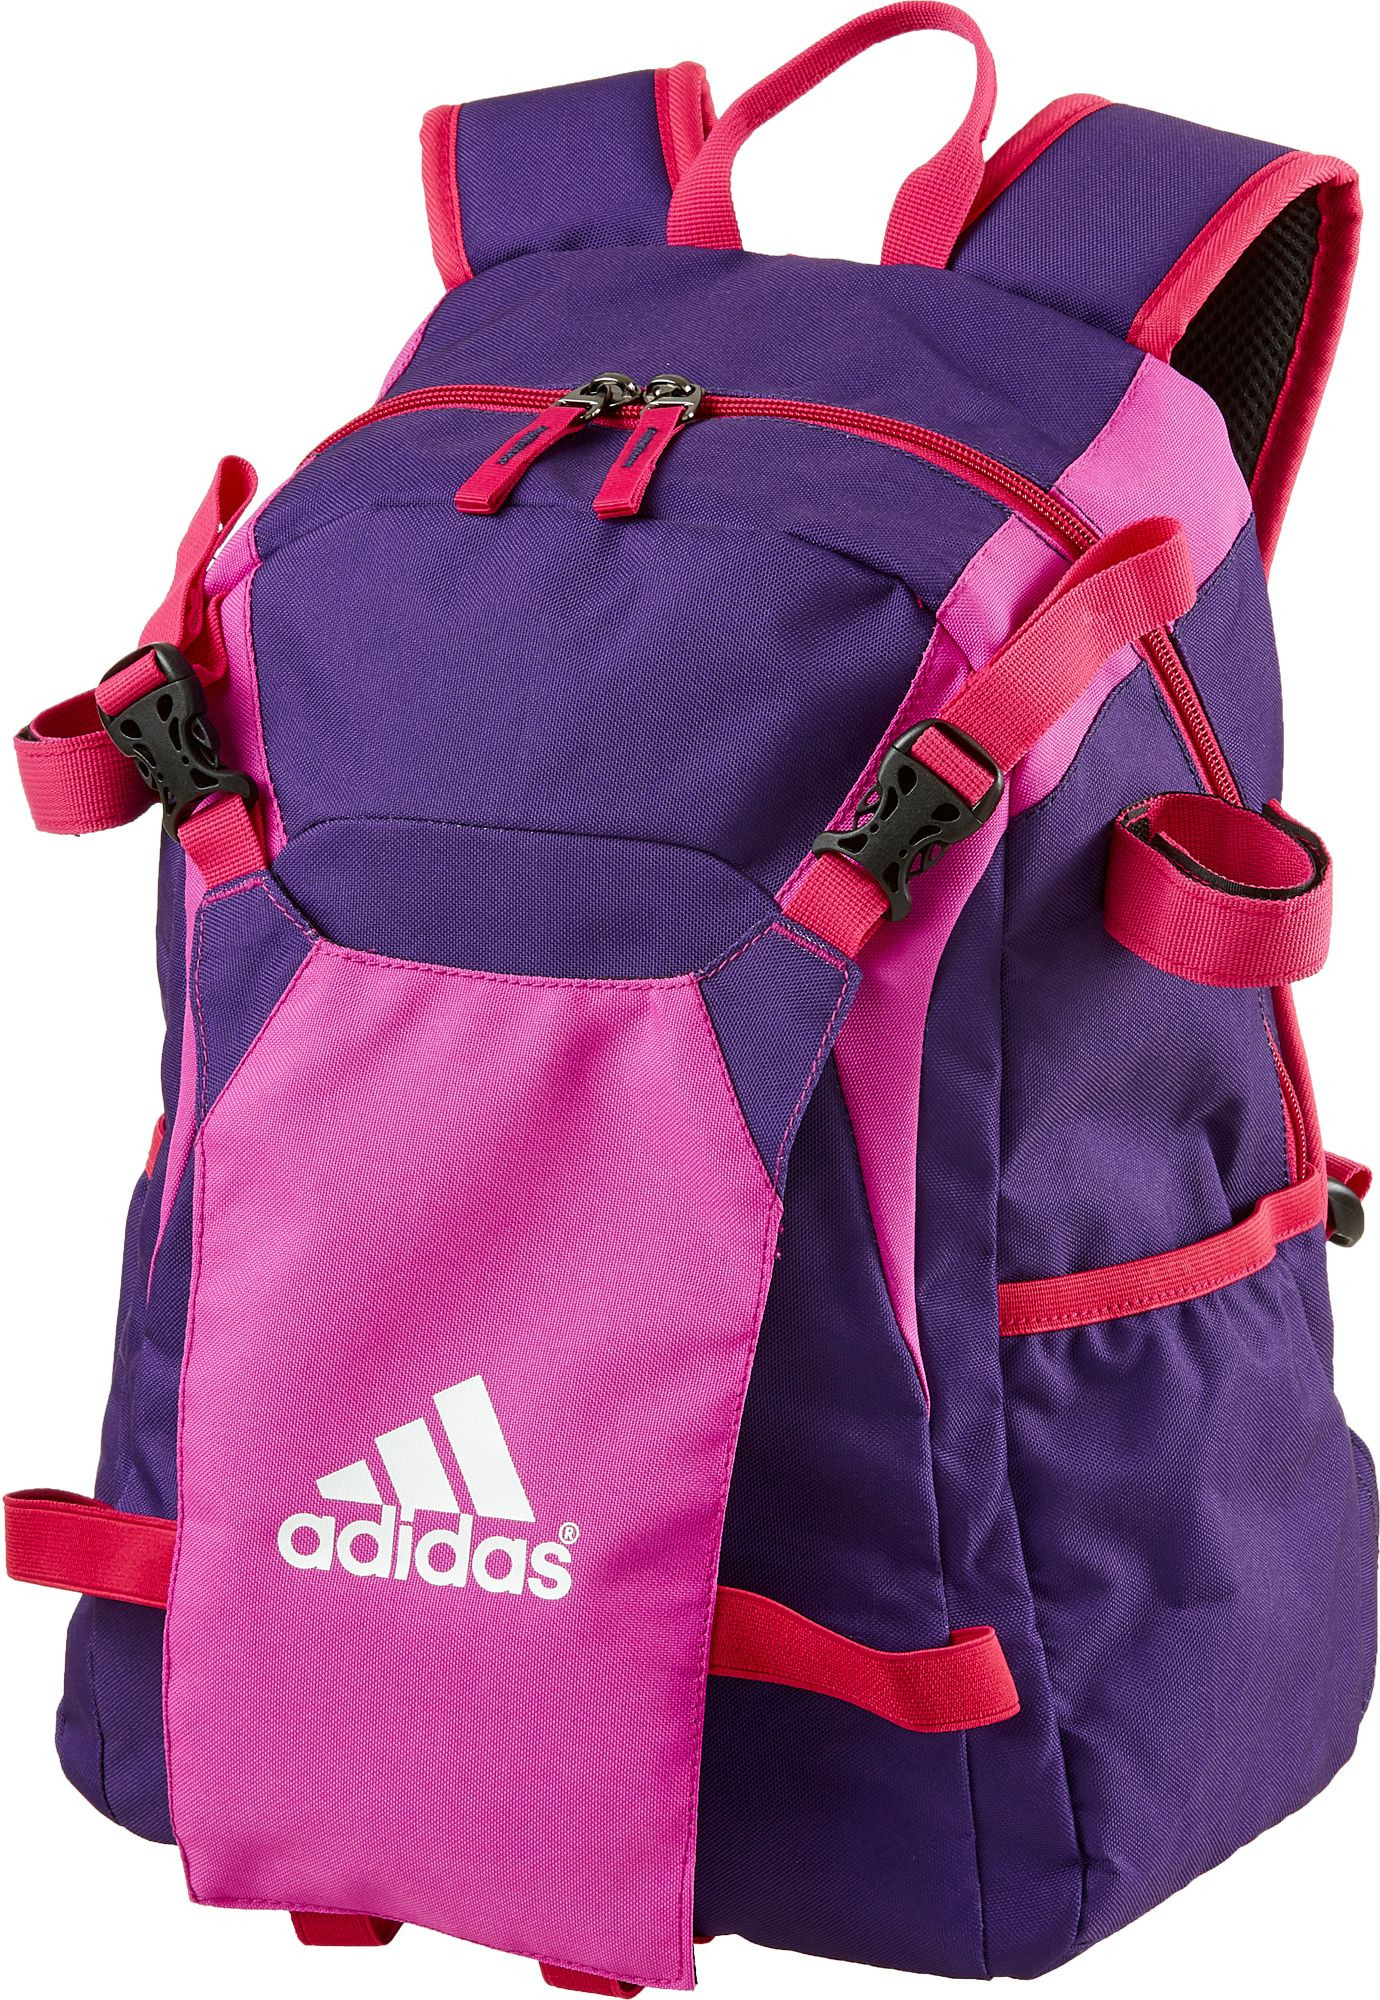 adidas backpacks dick s sporting goods